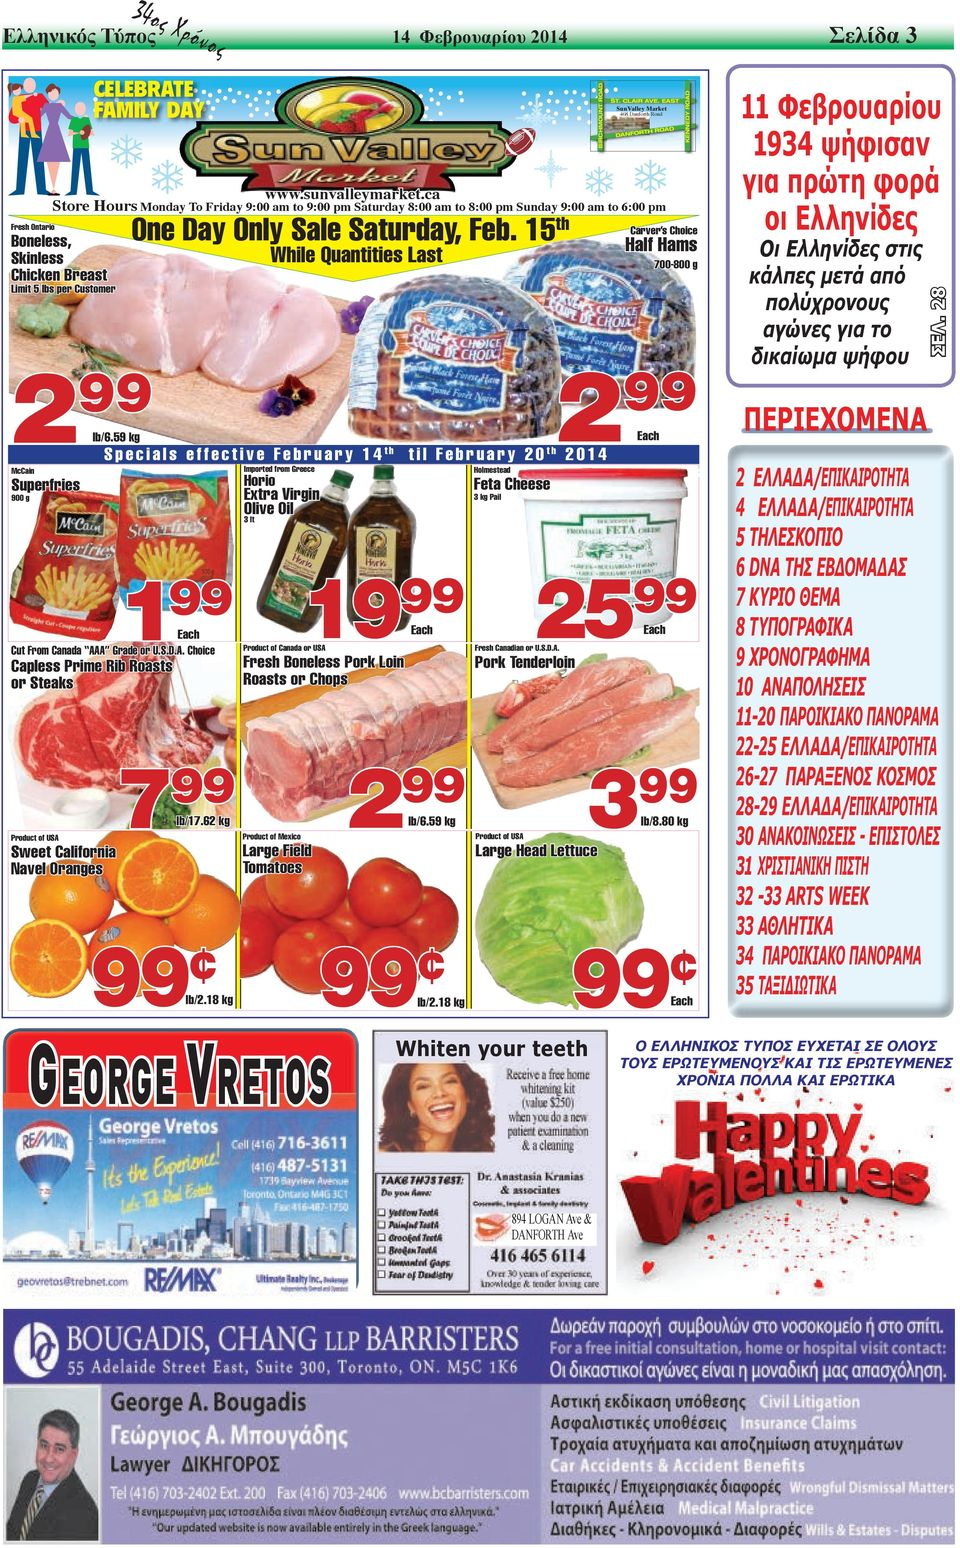 59 kg McCain Superfries 900 g CELEBRATE FAMILY DAY Specials effective February 14 th til February 20 th 2014 Holmestead Feta Cheese 3 kg Pail 1 99 Each Cut From Canada AAA Grade or U.S.D.A. Choice Capless Prime Rib Roasts or Steaks Product of USA Sweet California Navel Oranges 7 99 lb/17.